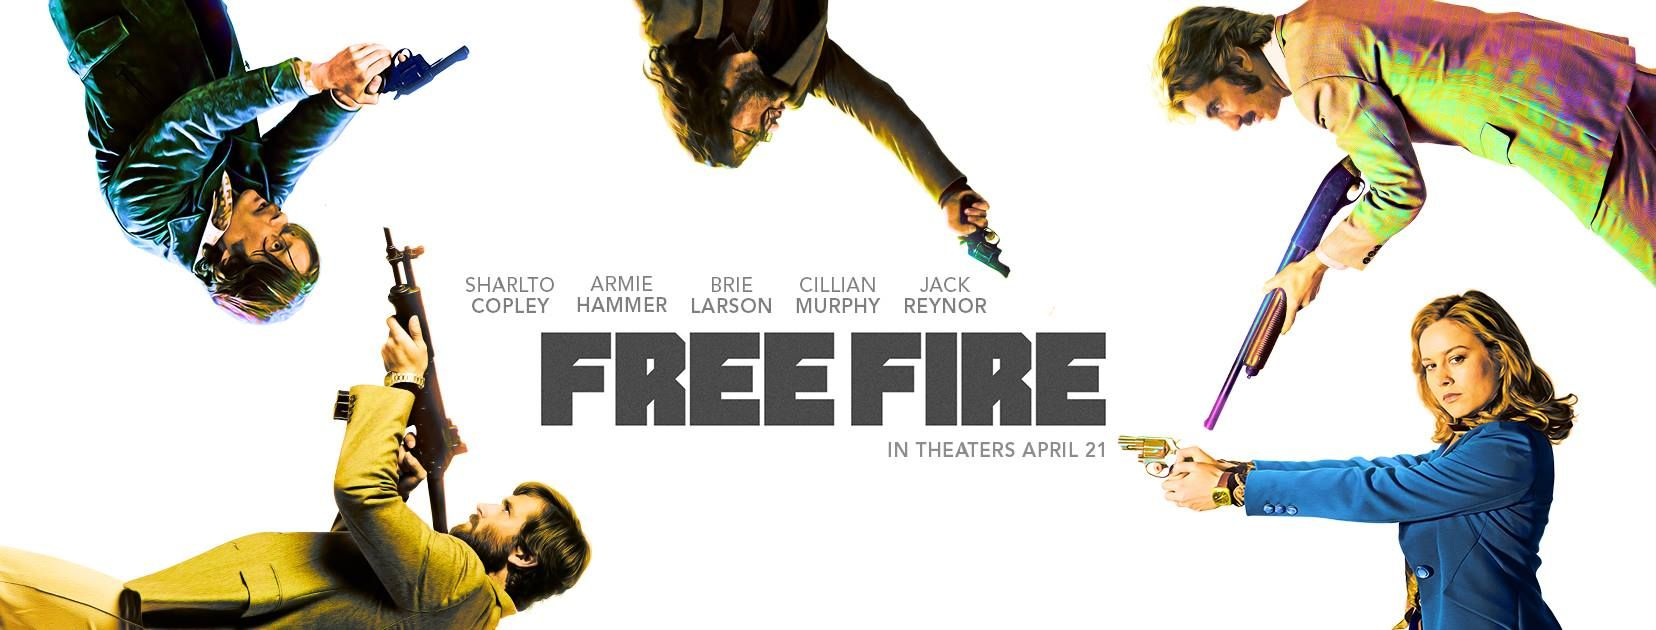 #FreeFire  Is this old-school shoot-em-up bang-bang movie worth checking out?  My quick read movie review is posted.  Follow all of my movie reviews via FB M.U.S.E. Enthusiasts and https://museenthusiasts.wordpress.com/